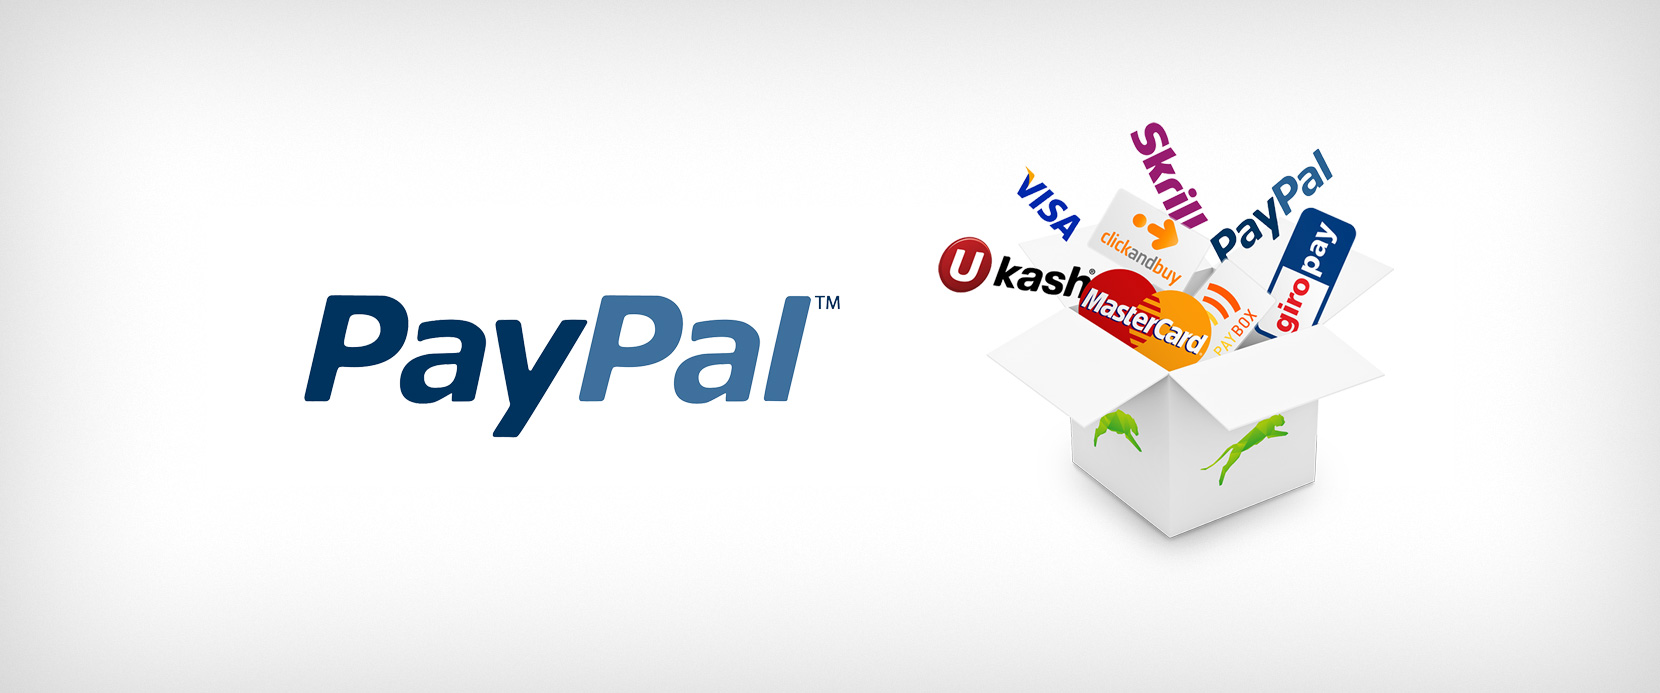 paypal email tipico